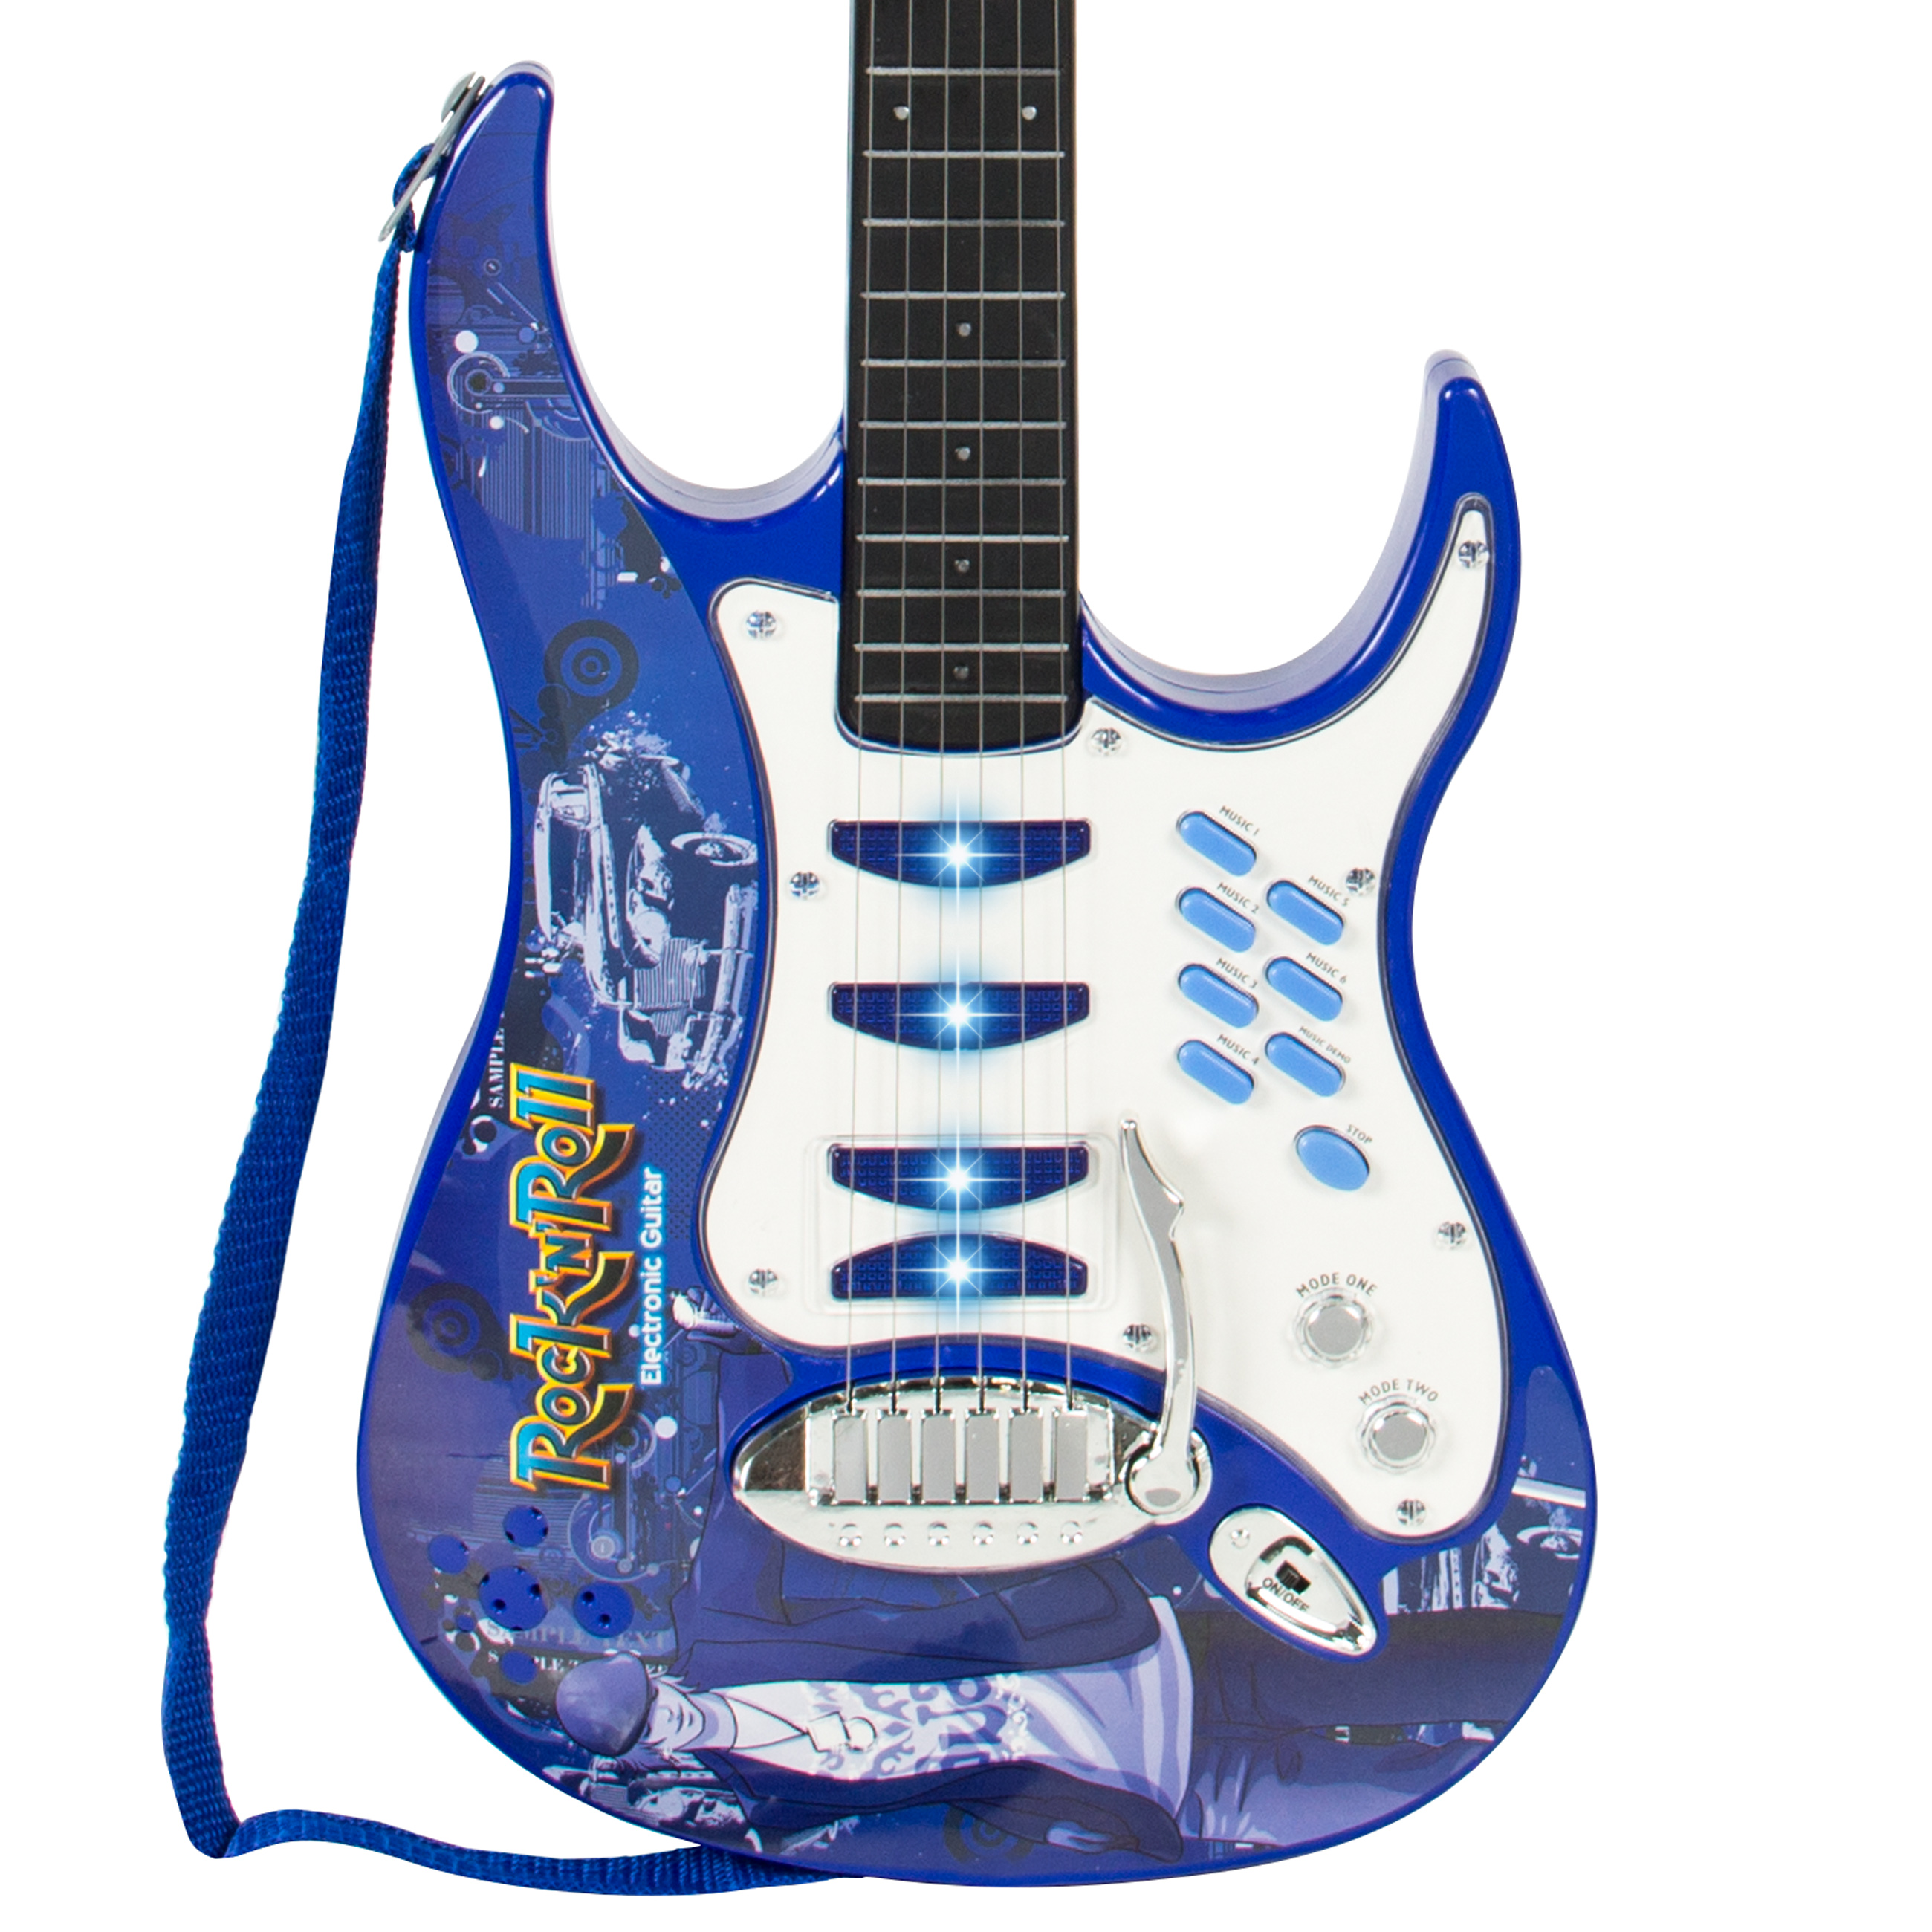 Best Choice Products Kids Electric Guitar Play Set W MP3 Player